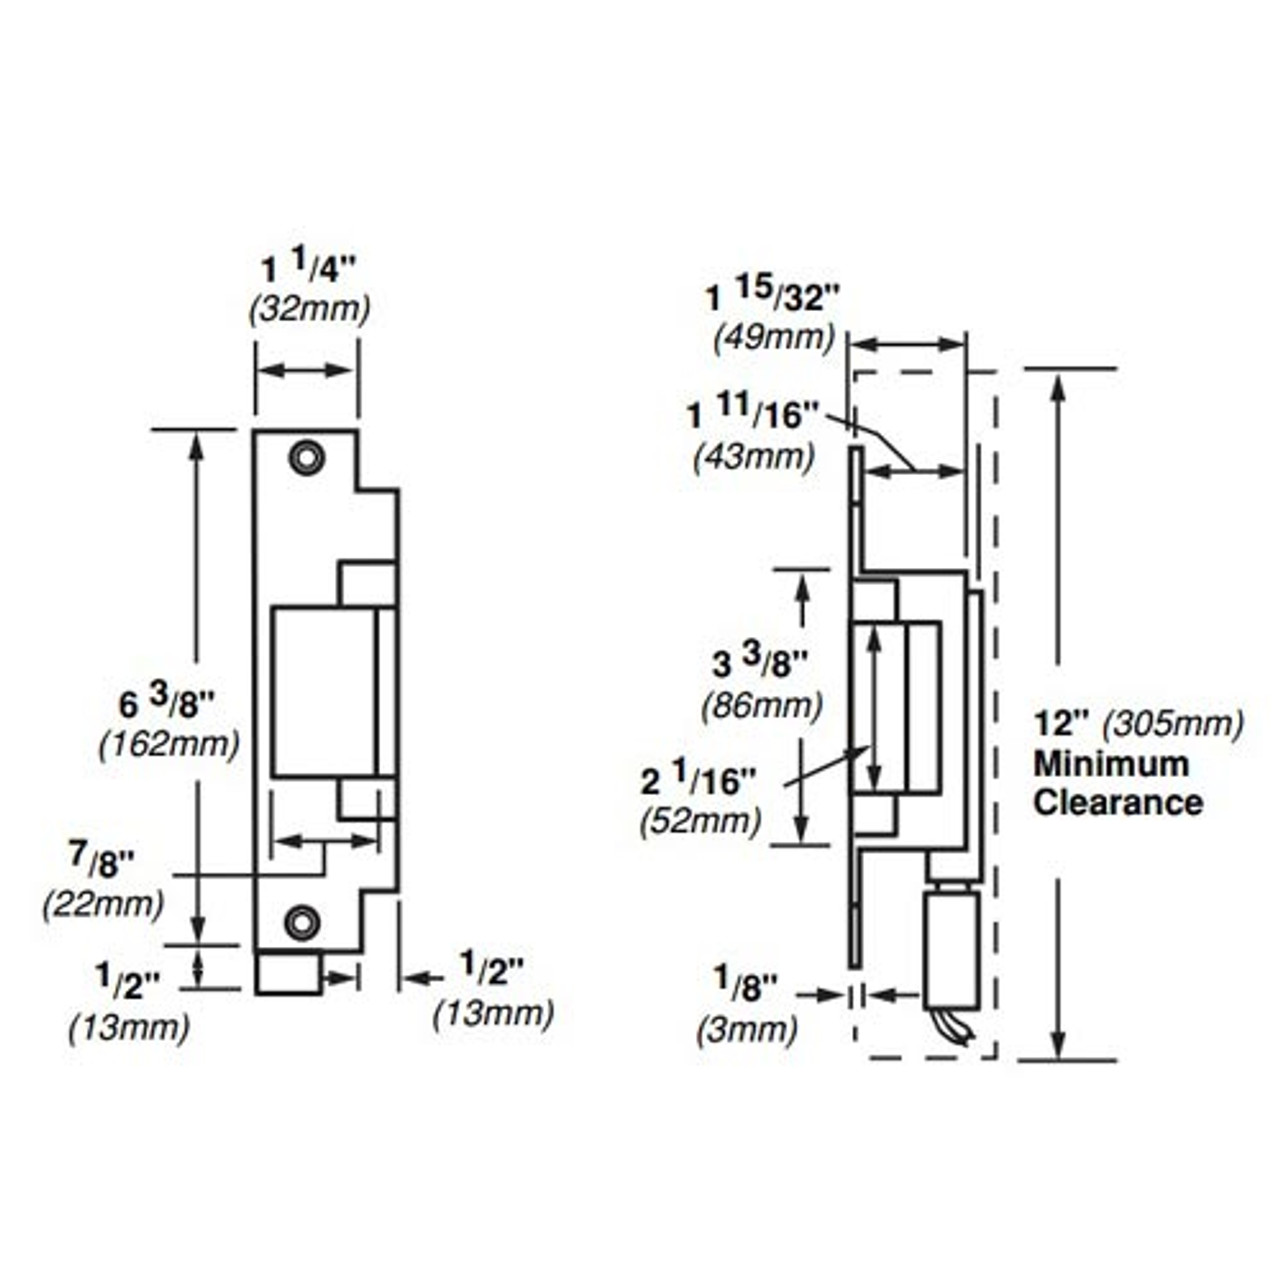 6212-DS-24VDC-US32 Von Duprin Electric Strike for Mortise or Cylindrical Locksets in Bright Stainless Steel Finish